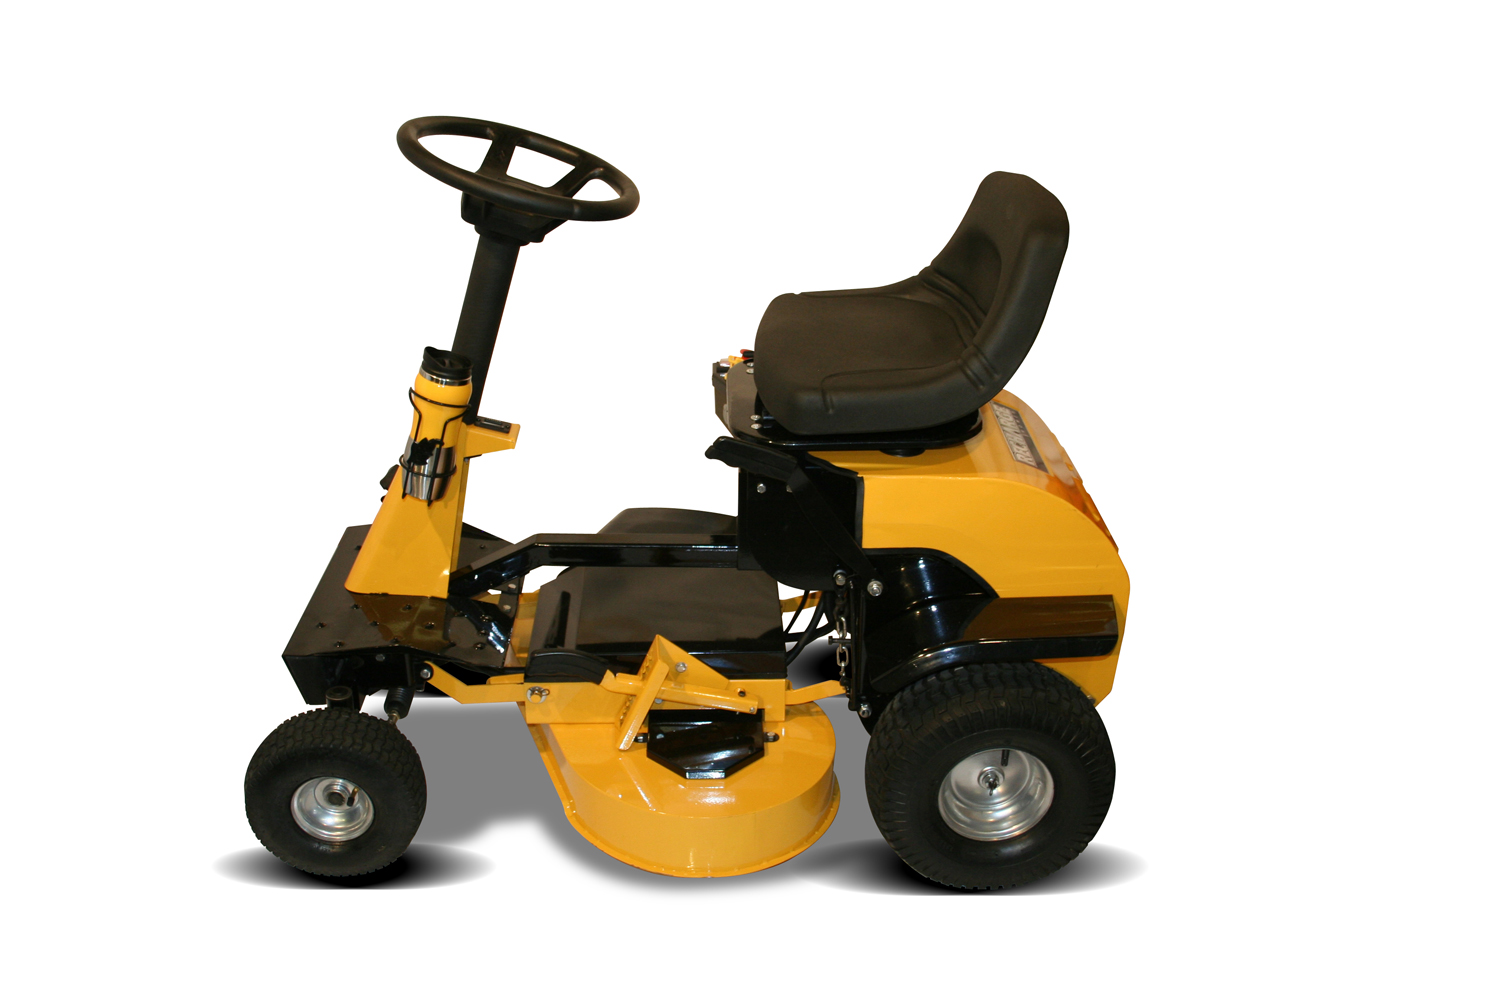 riding lawn mowers in canada vehicle wiring diagram symbols the new recharge mower g2 is now on floor at lowes